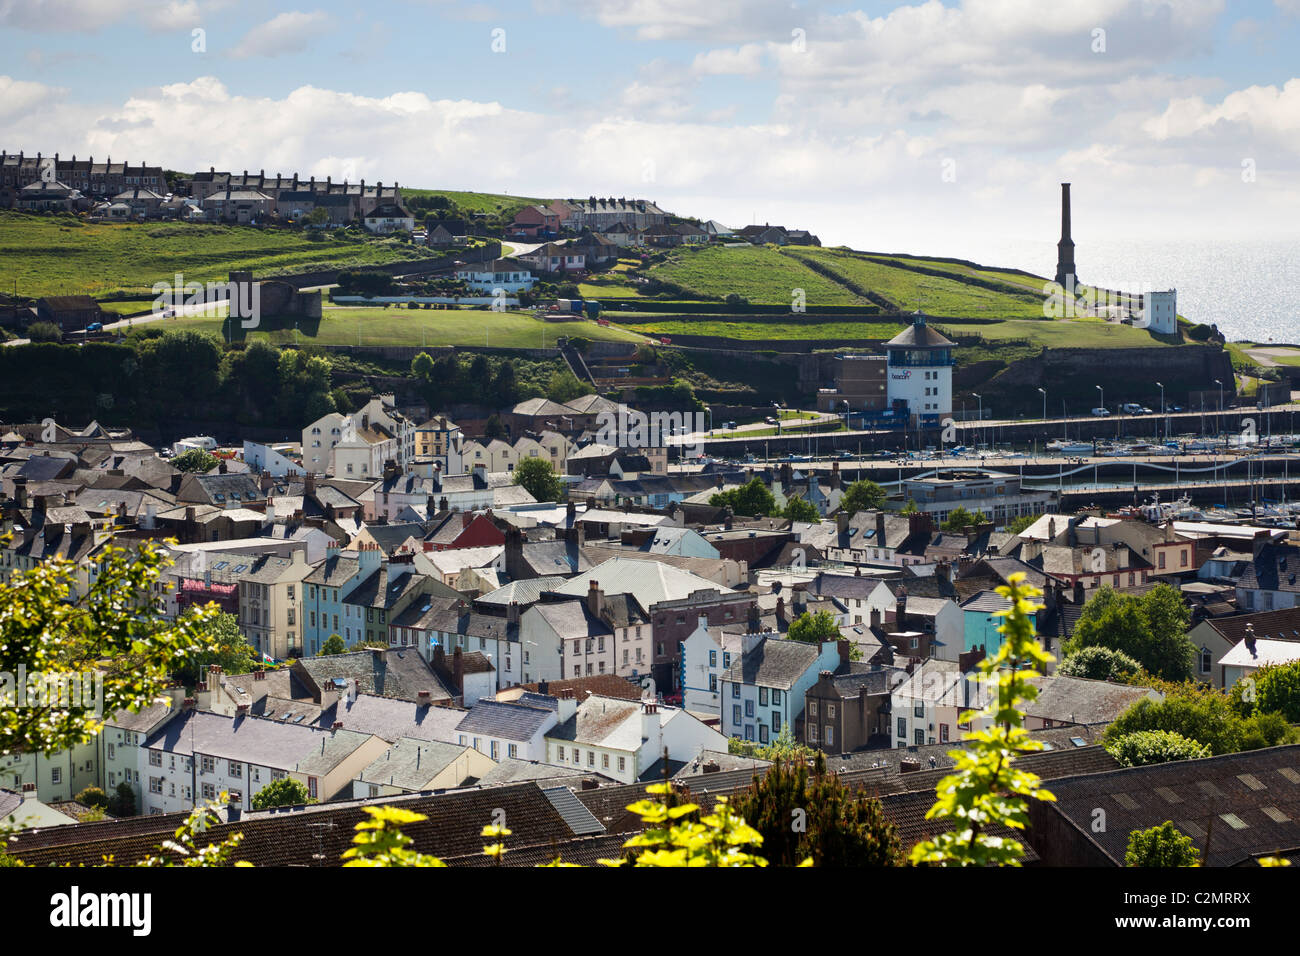 The town of Whitehaven, Cumbria, England UK - Stock Image